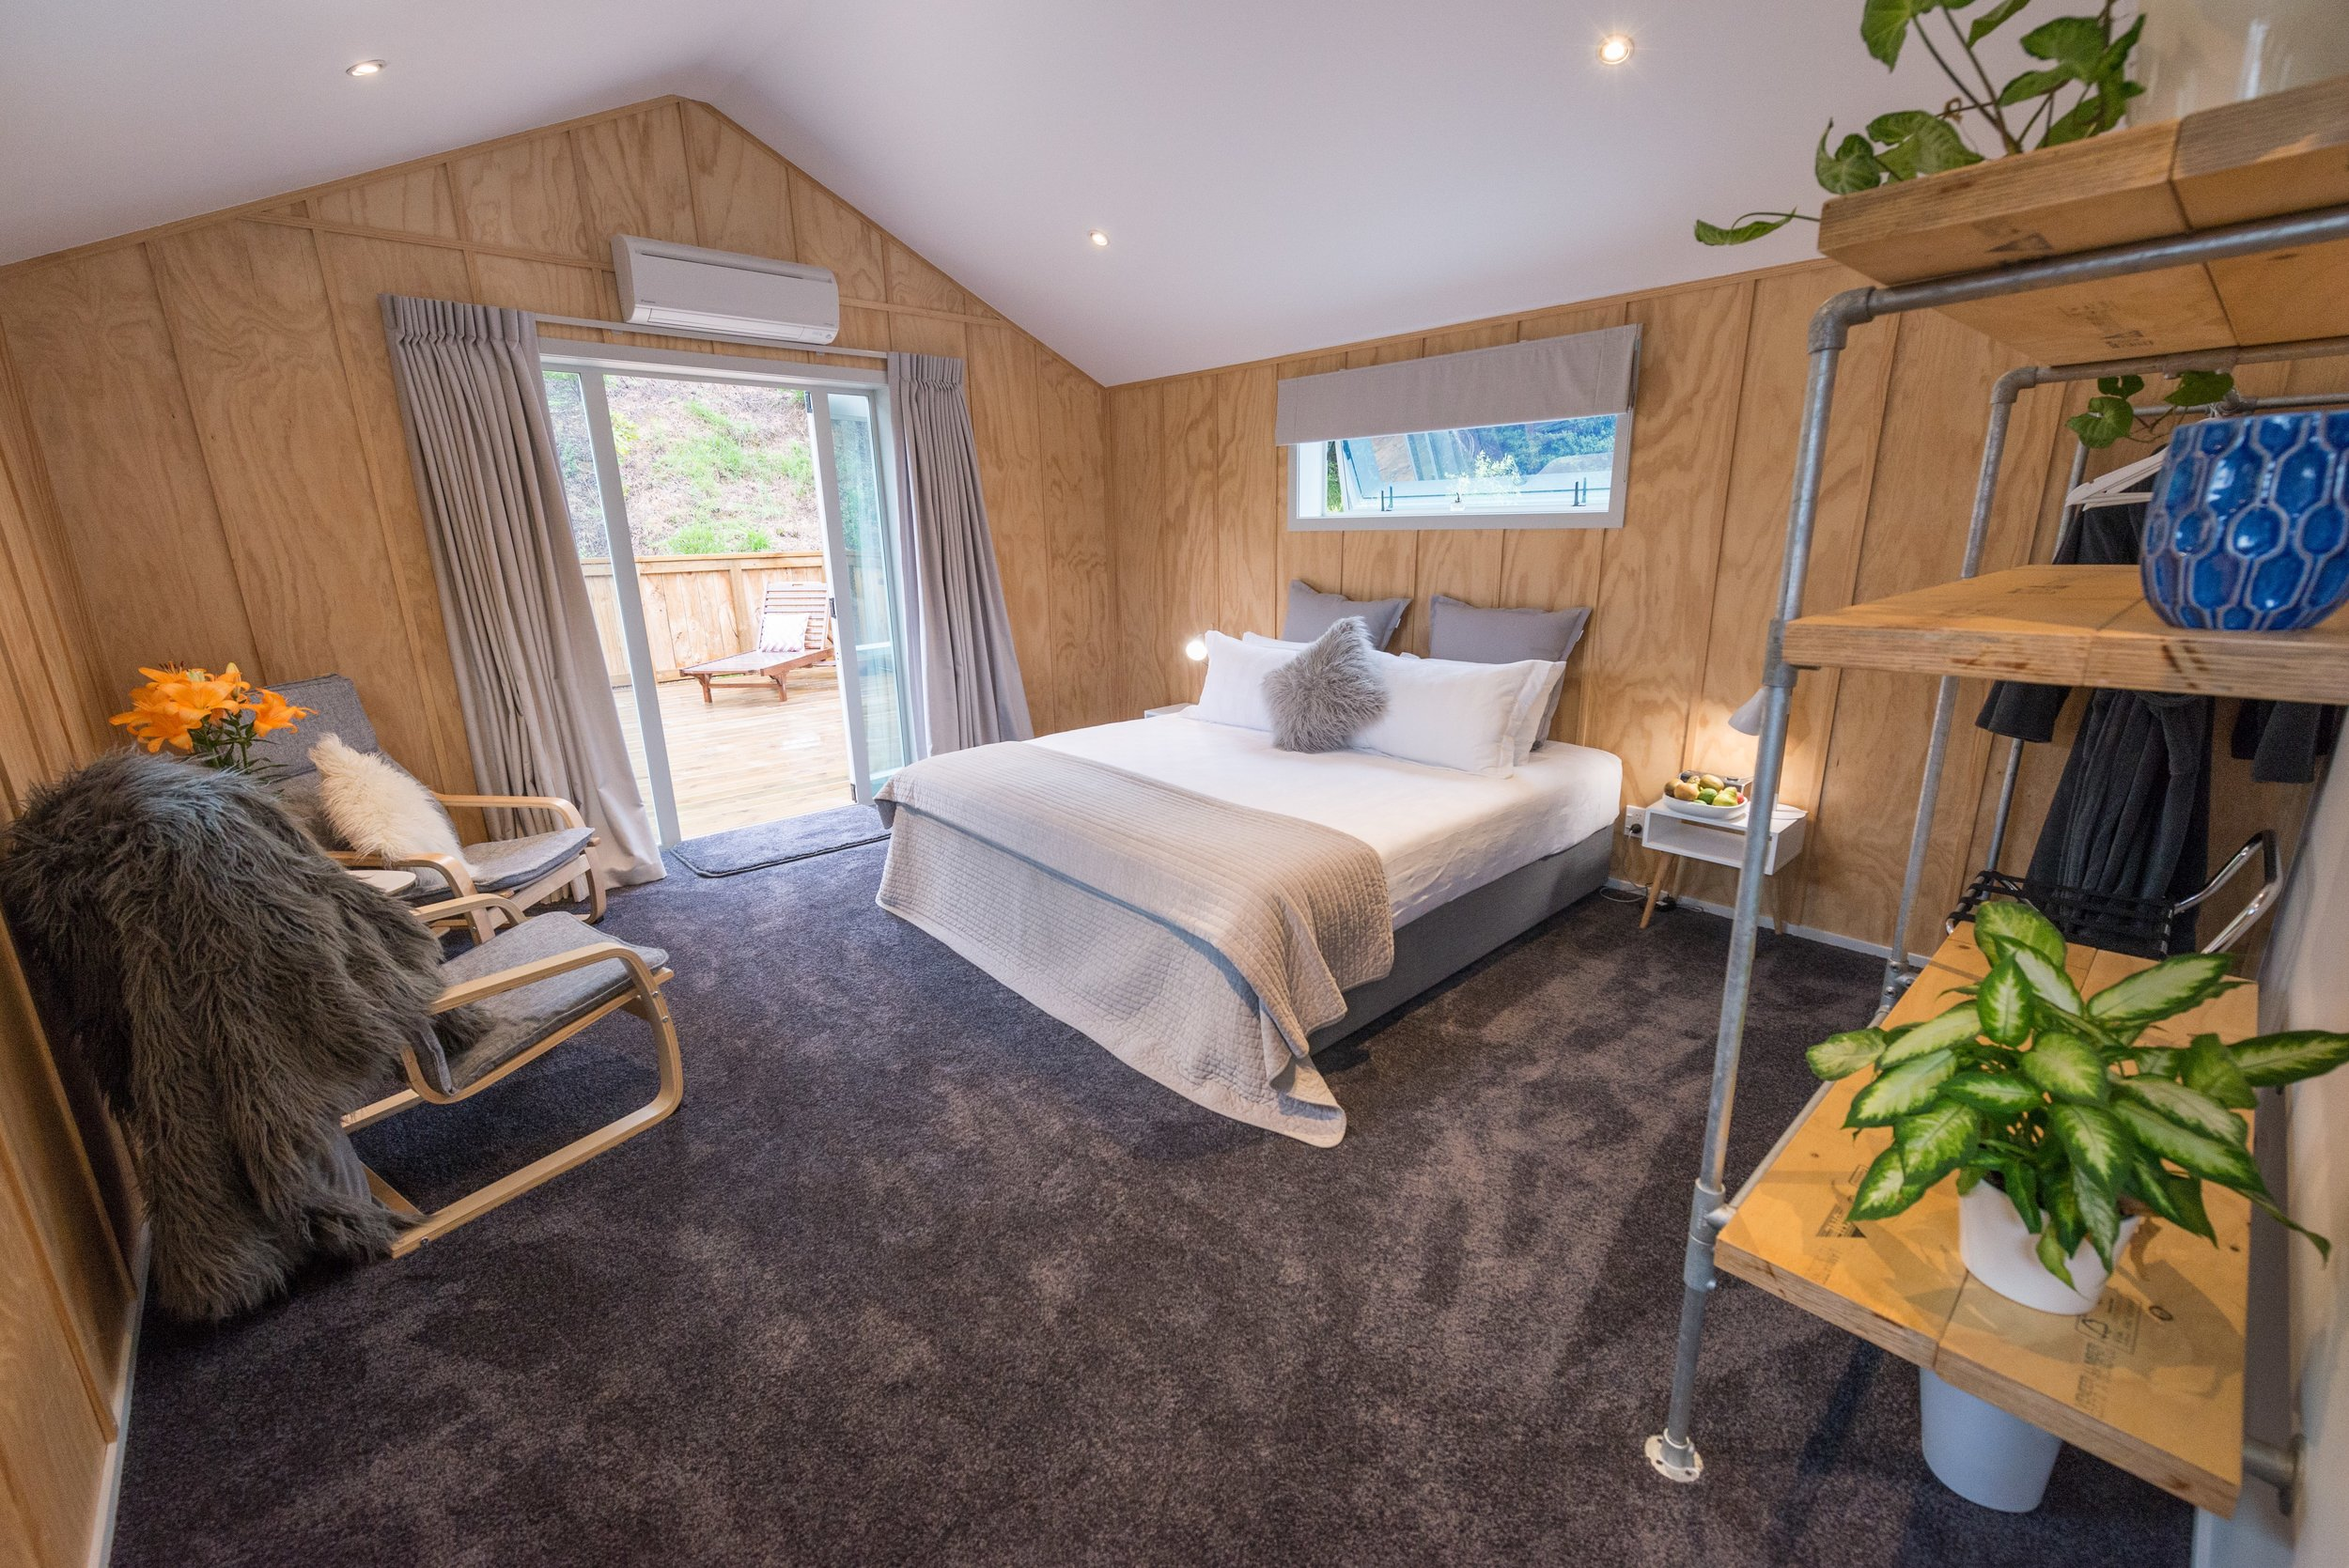 - The lodge has six large rooms each with ensuite. Up-cycled and eclectic, modern and bespoke furnishings. A resort-styled retreat with salt-water pool, sauna, house-bar and BBQ. Walking distance to bars and restaurants.